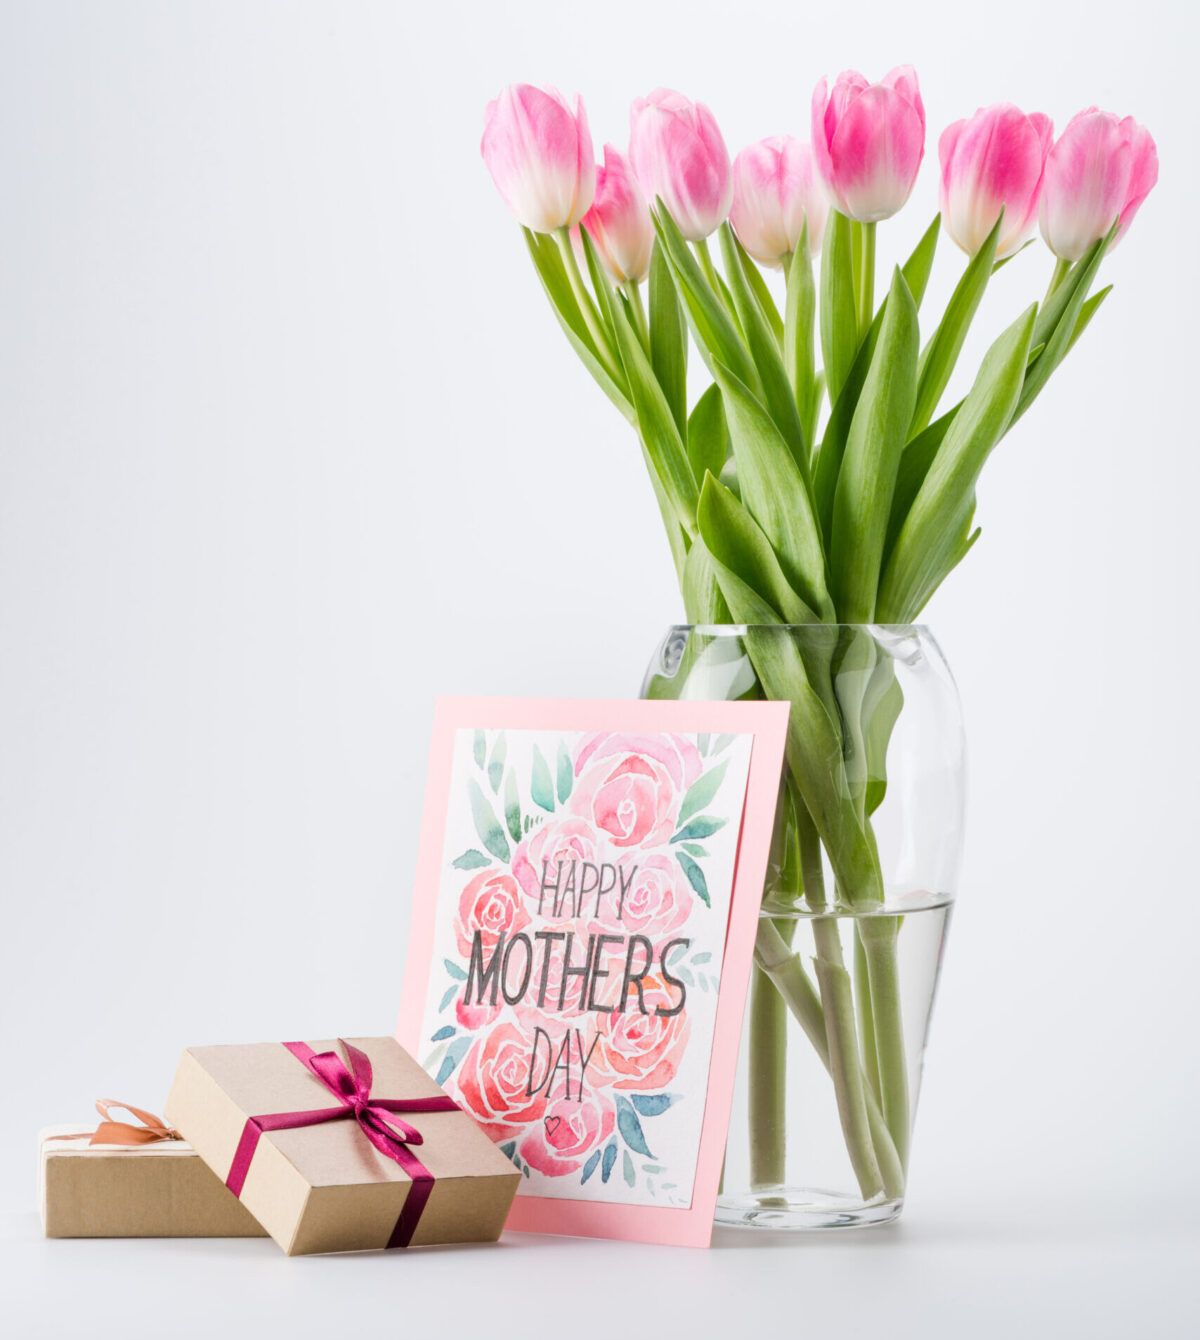 Looking for a gift for that special lady? Whether it's your mom, grandma, aunt, sister or someone you looked up to we're sharing some fun, unique and classic gift ideas for the ladies in your life.